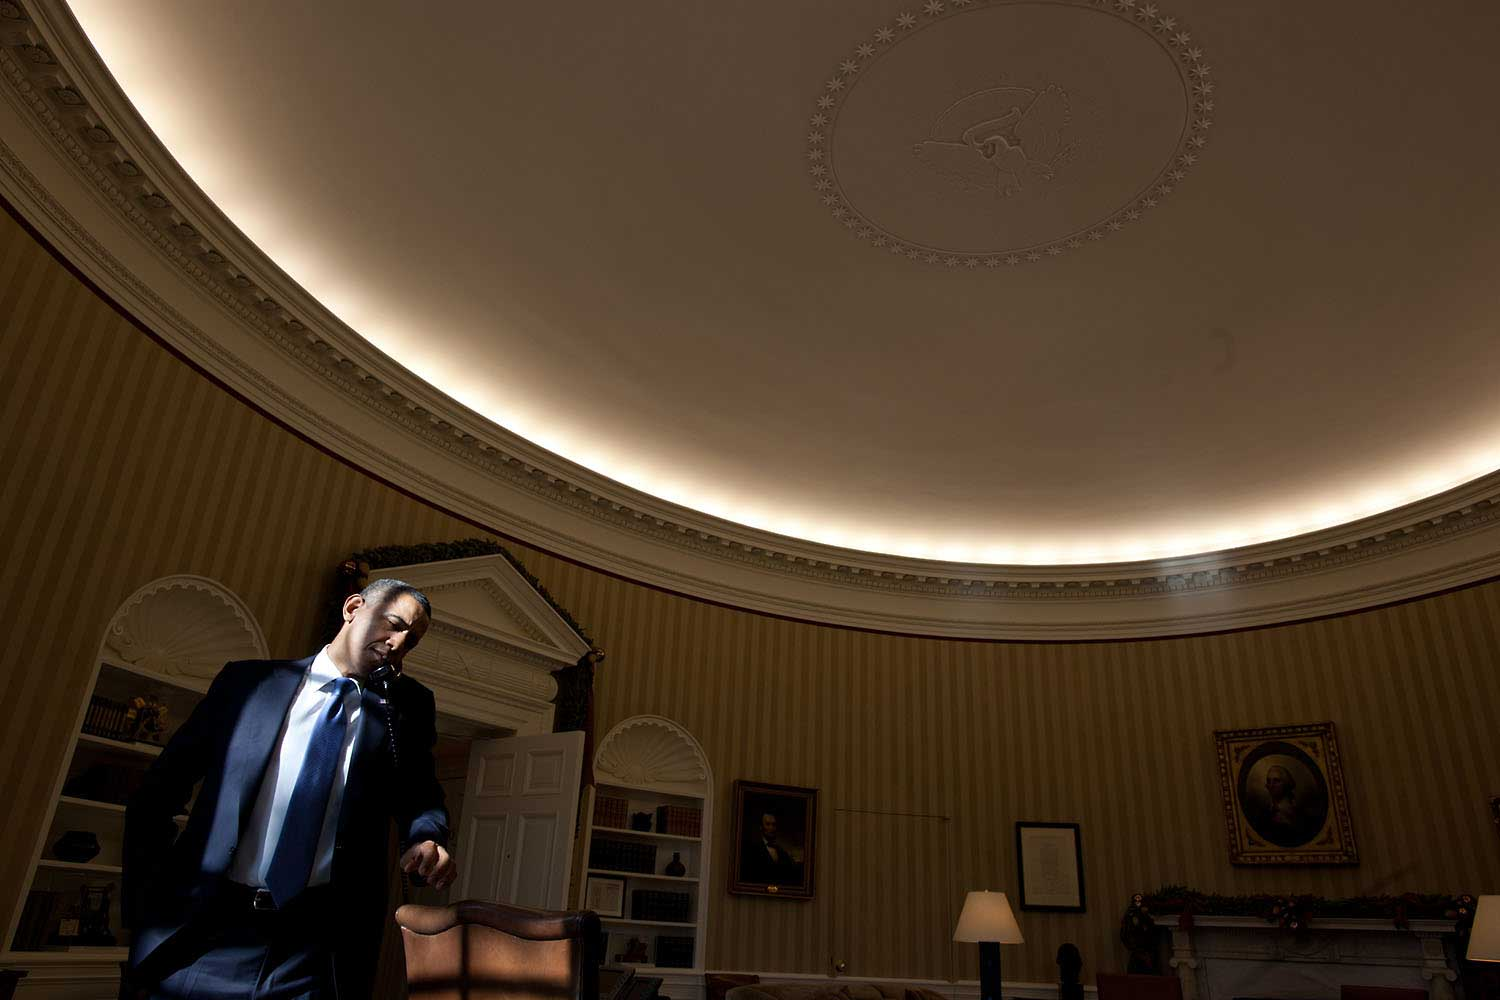 A splash of sunlight falls on the President's face as he makes a phone call in the Oval Office, Dec. 19, 2011.